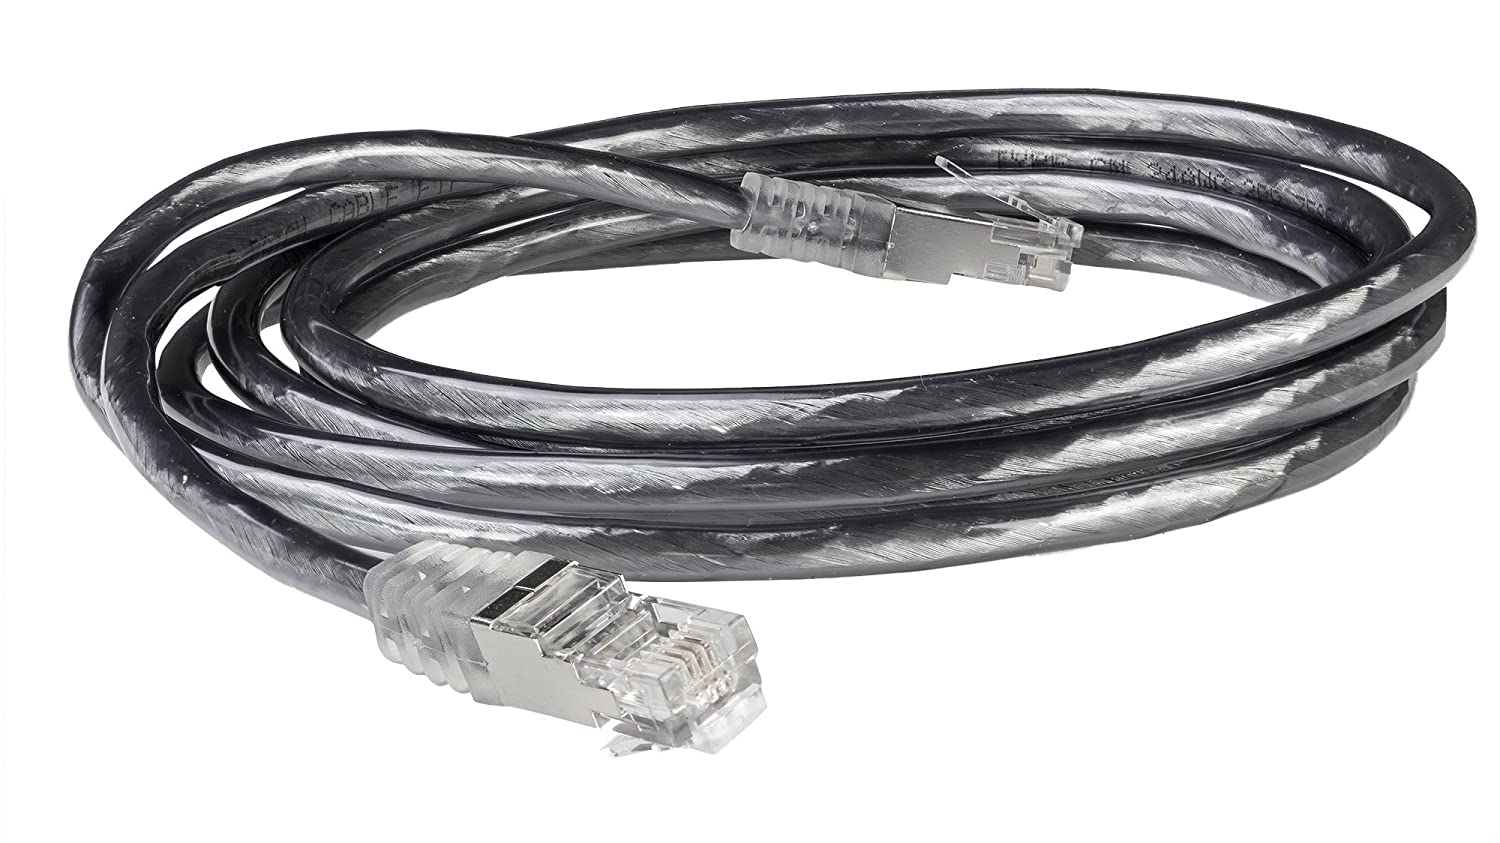 100 Feet, 30.48 Meters Gray C2G 28726 RJ11 High-Speed Internet Modem Cable